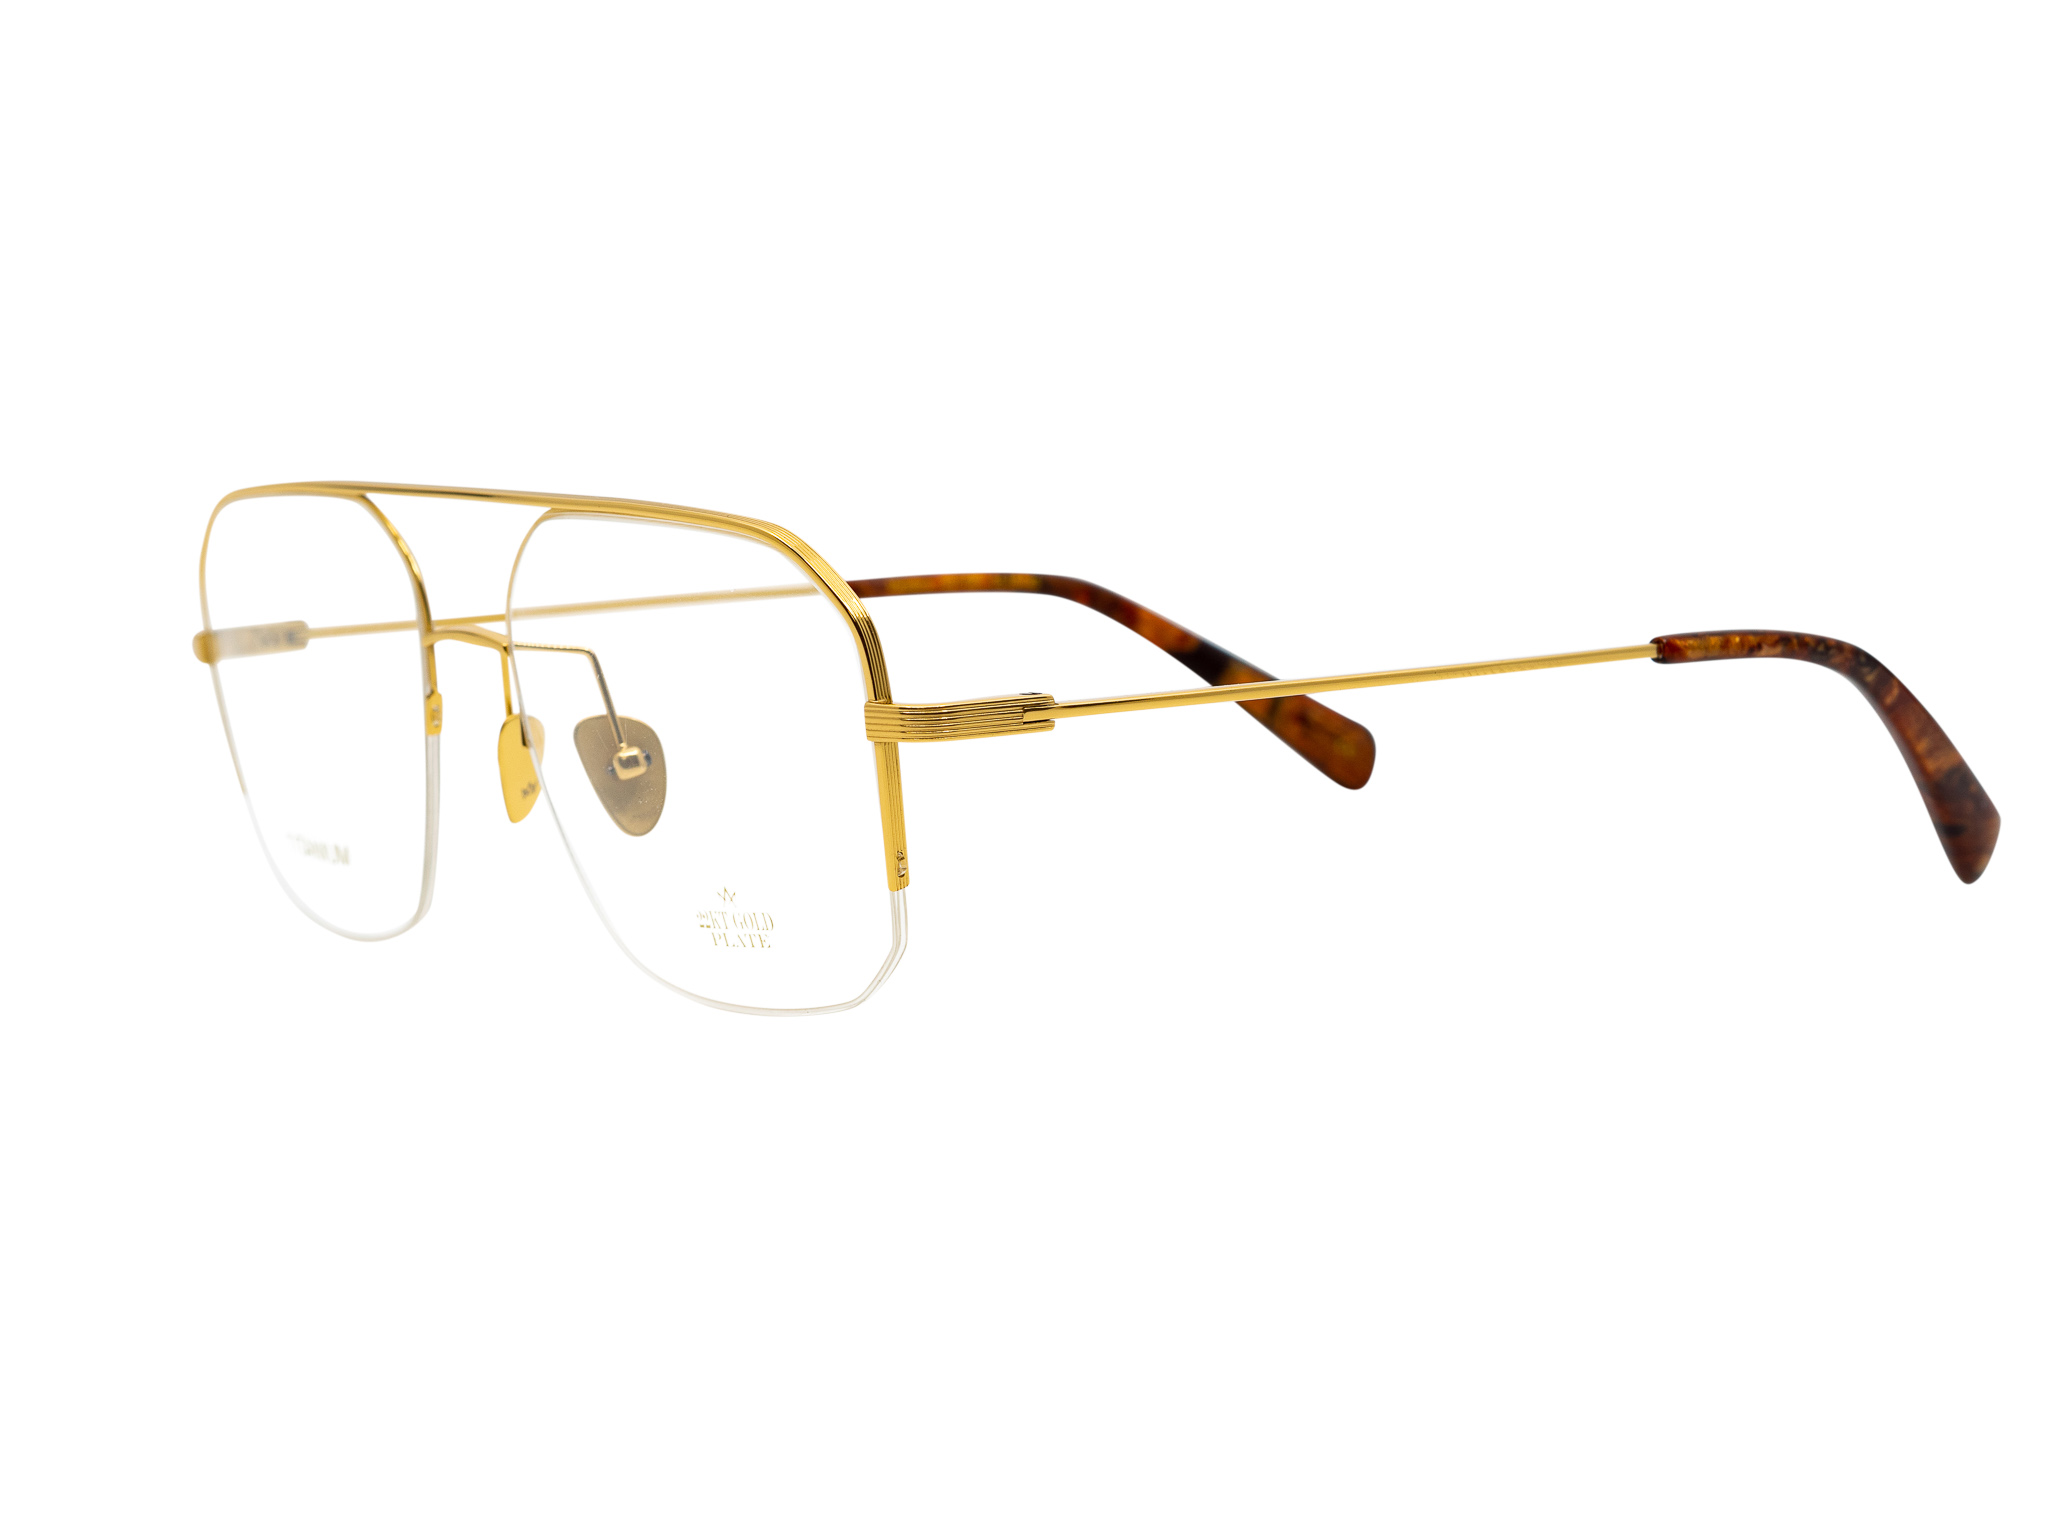 http://AM%20Eyewear%20Maradona%20037-GD